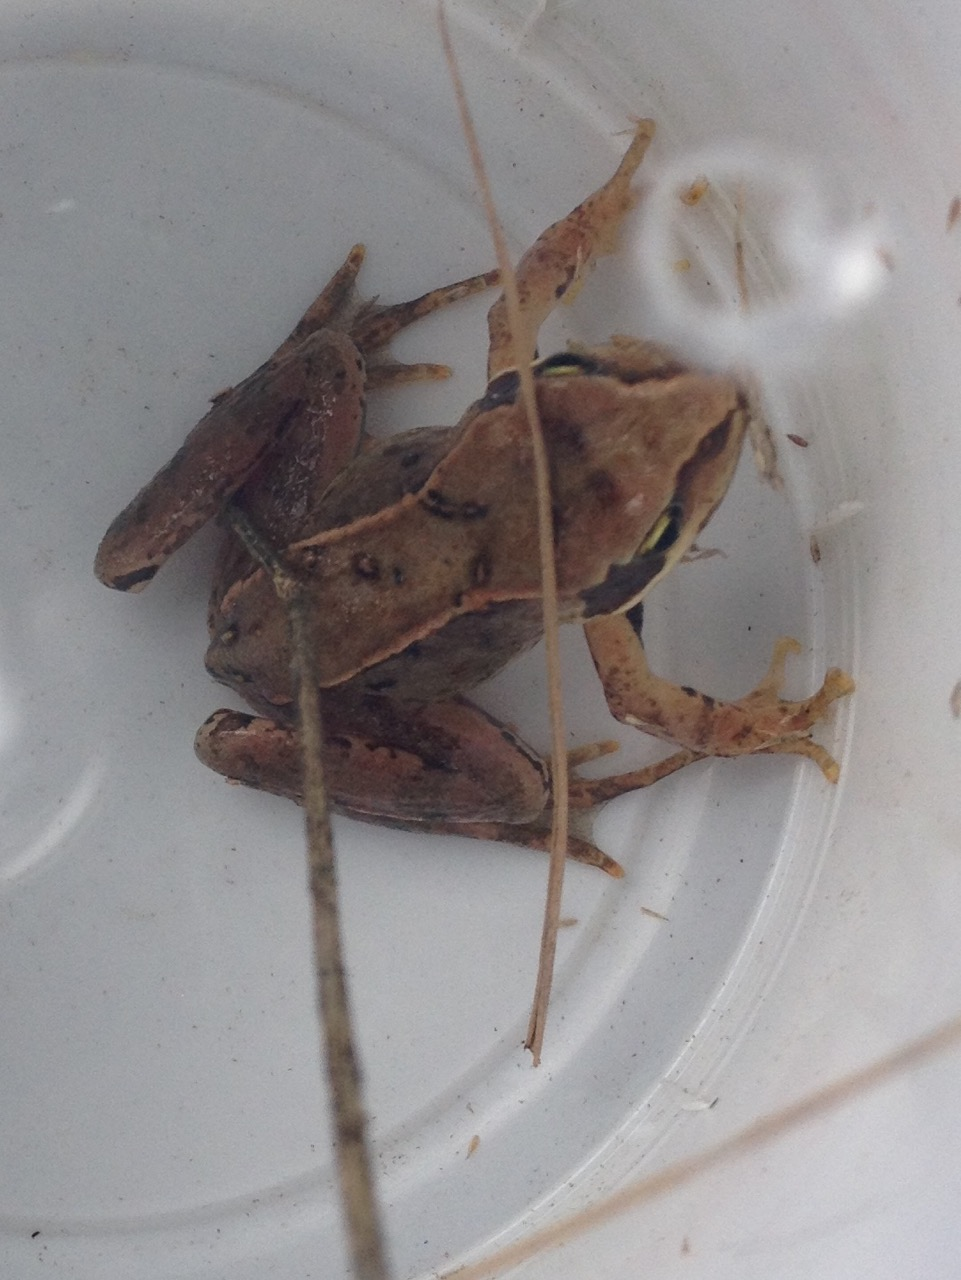 Families like hunting for creatures in the garden - this was one of the best catches so far - a common frog - probably three or four years old - in the long grass.